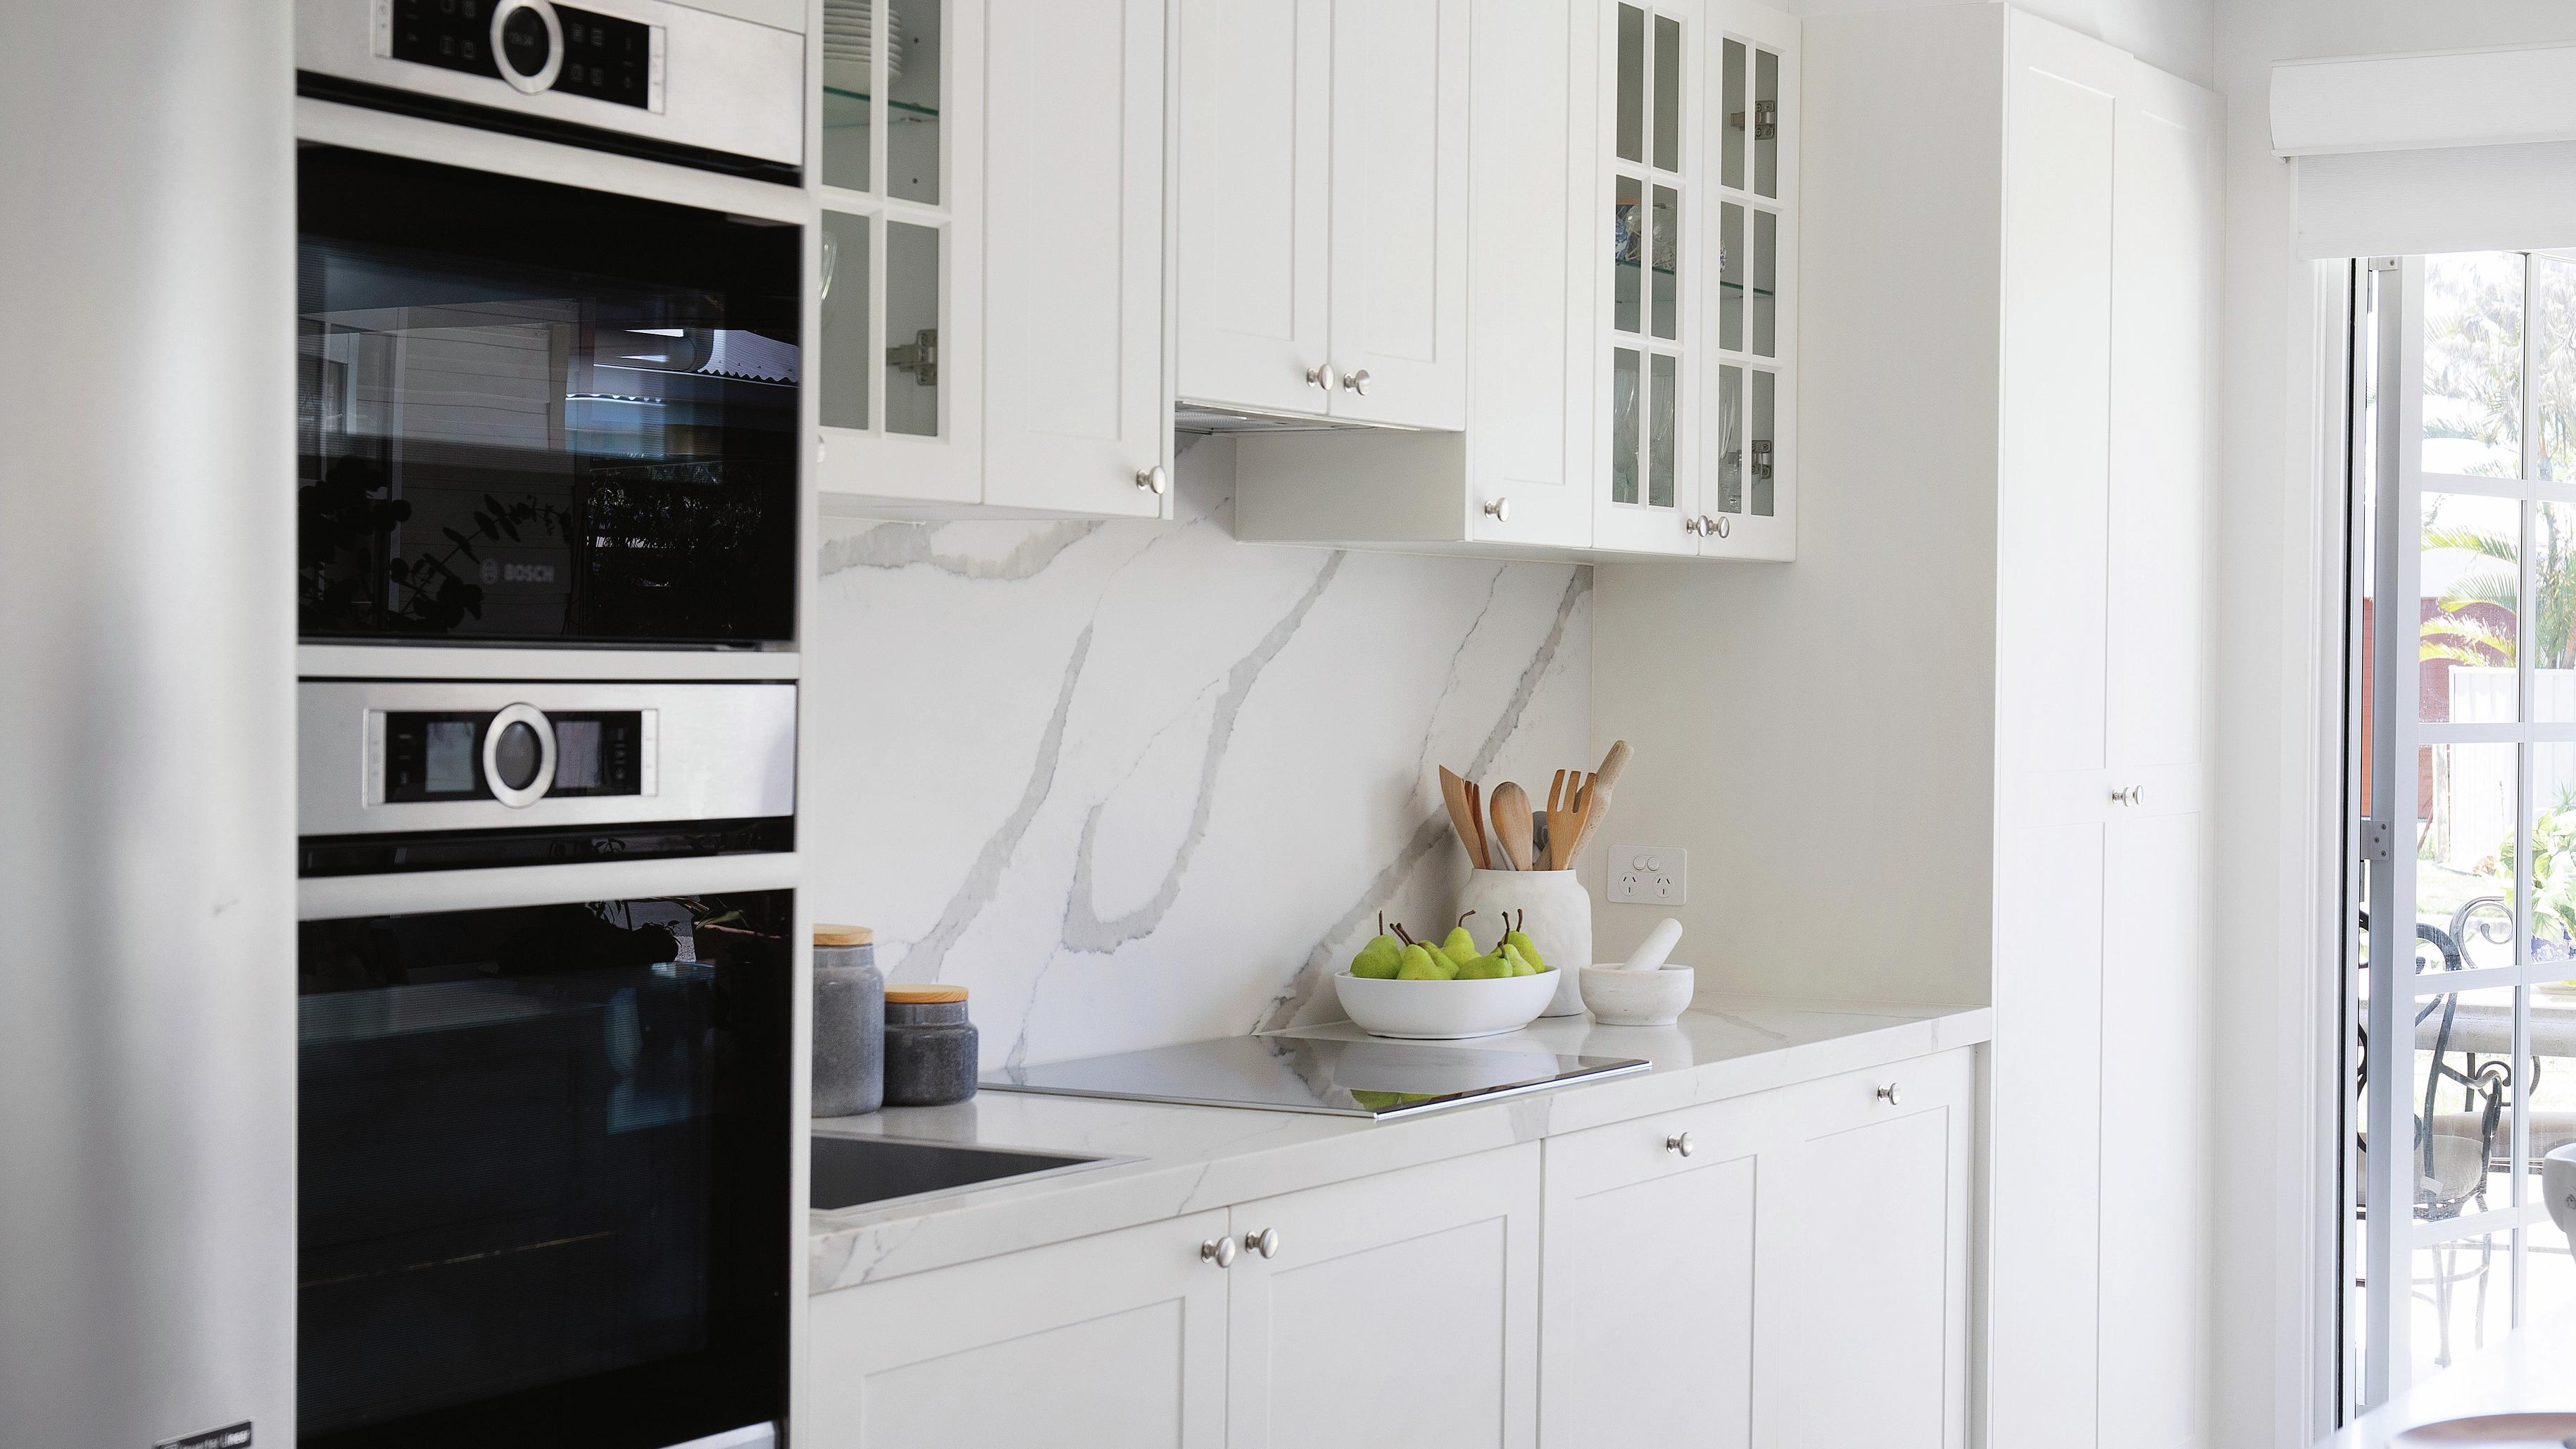 Shaker-style cabinets in a modern white kitchen.